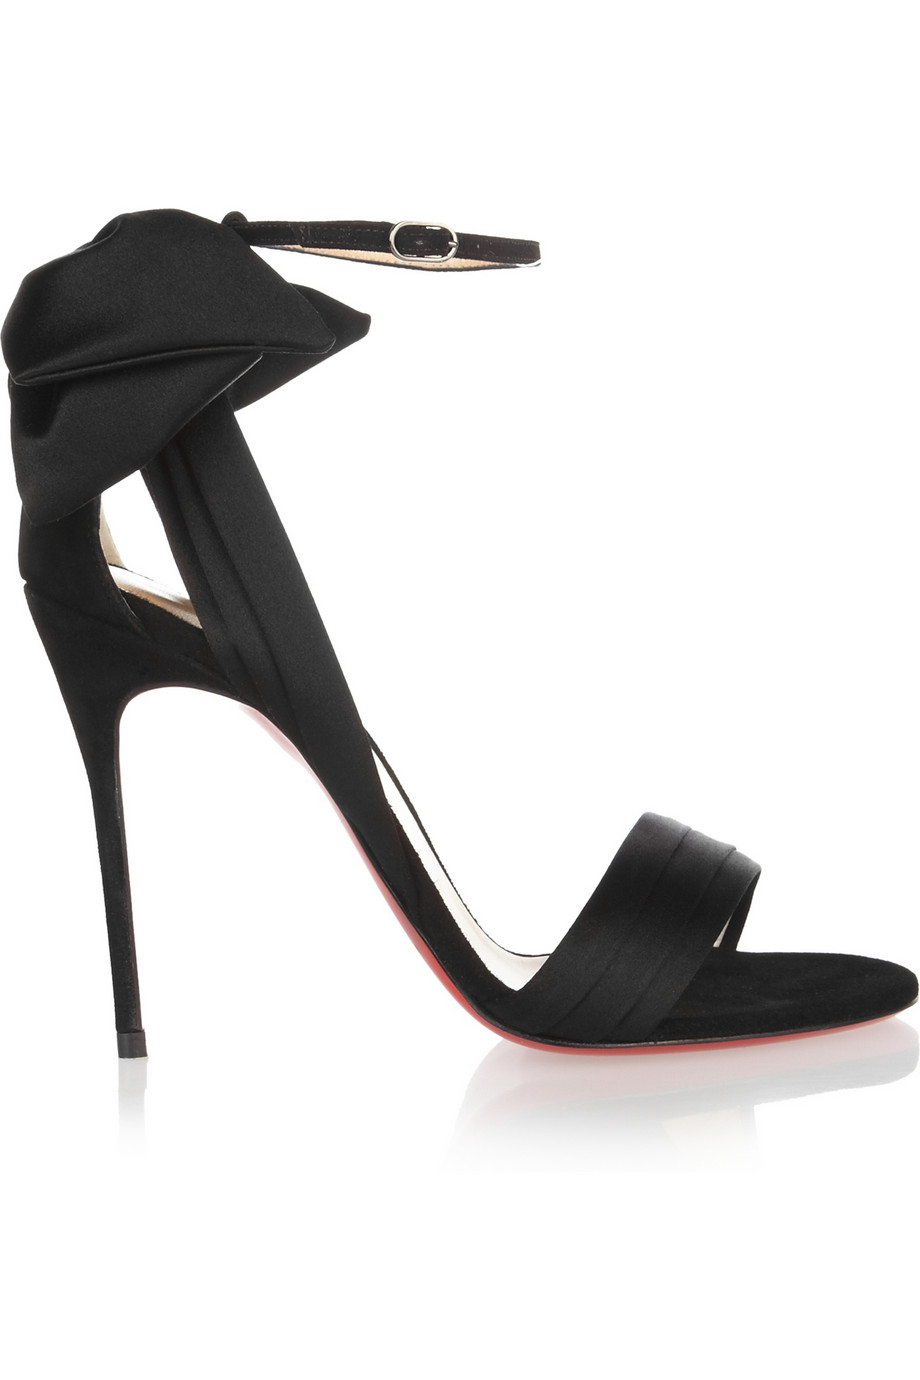 a7ec33c99aa6 Lyst - Christian Louboutin Vampanodo Satin and Suede Sandals in Black